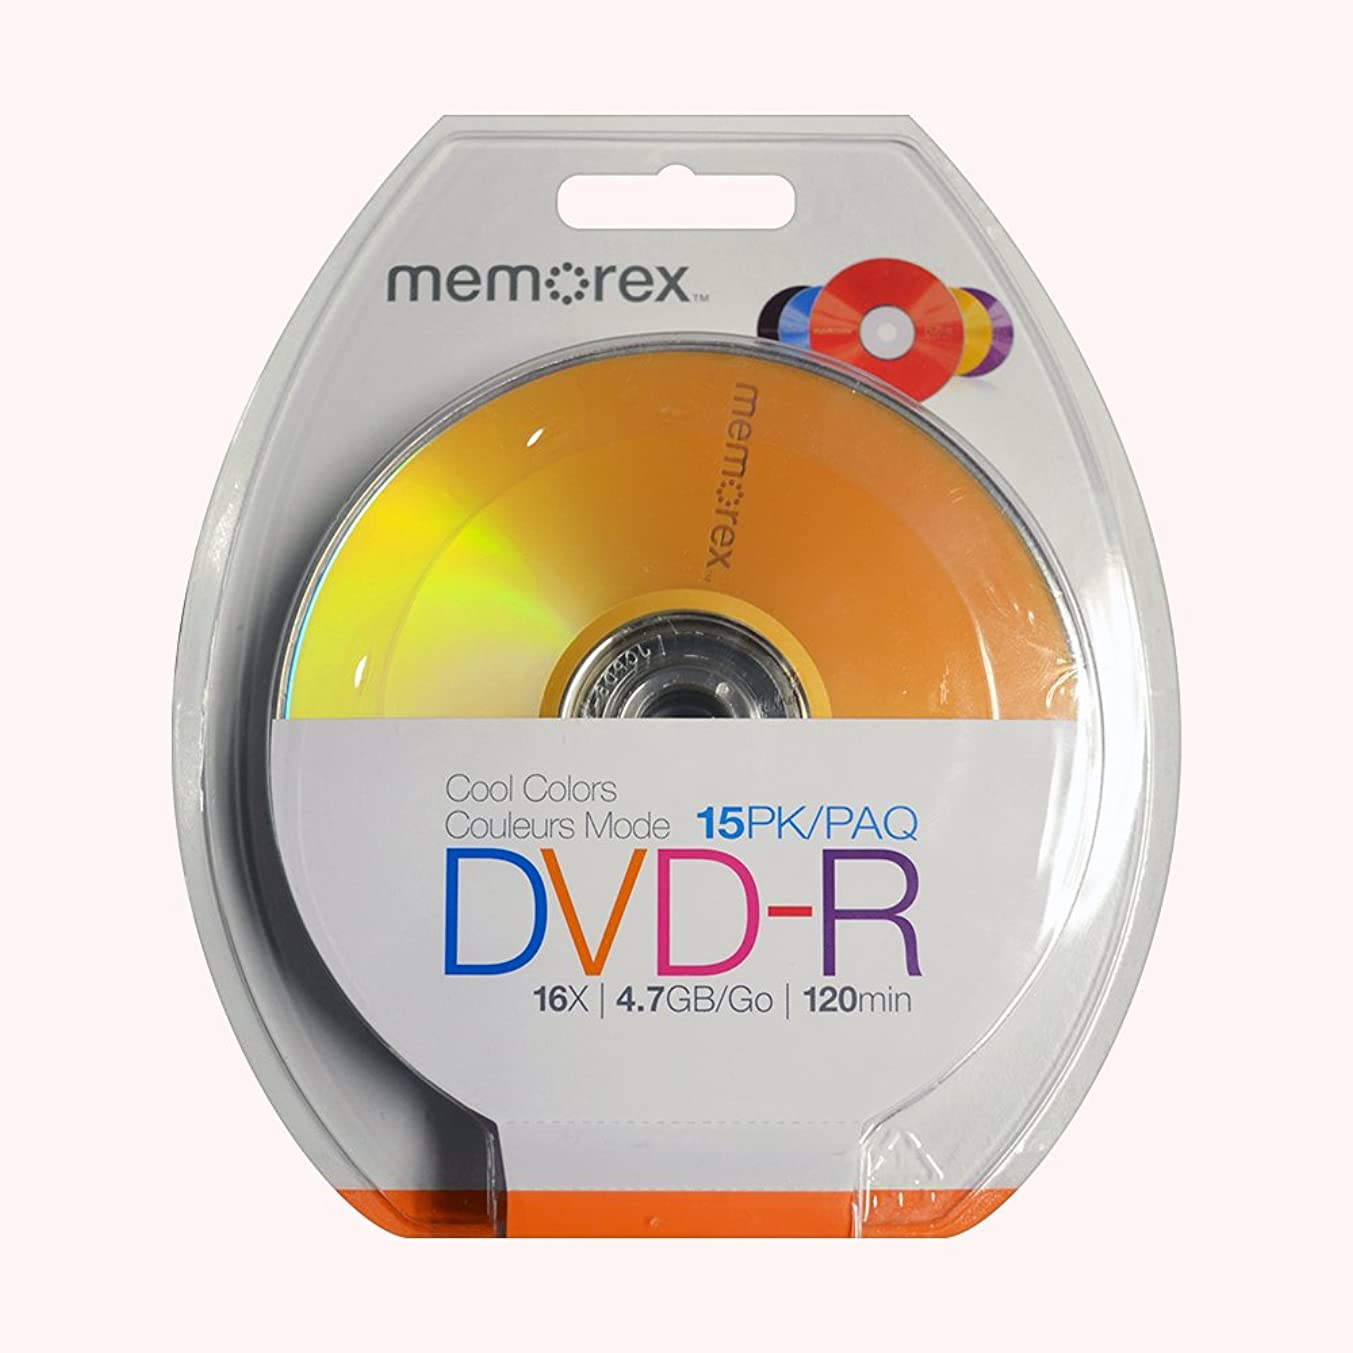 Memorex 4.7GB 16X DVD-R Blister Cool Colors, 15 Pack (32020019223)